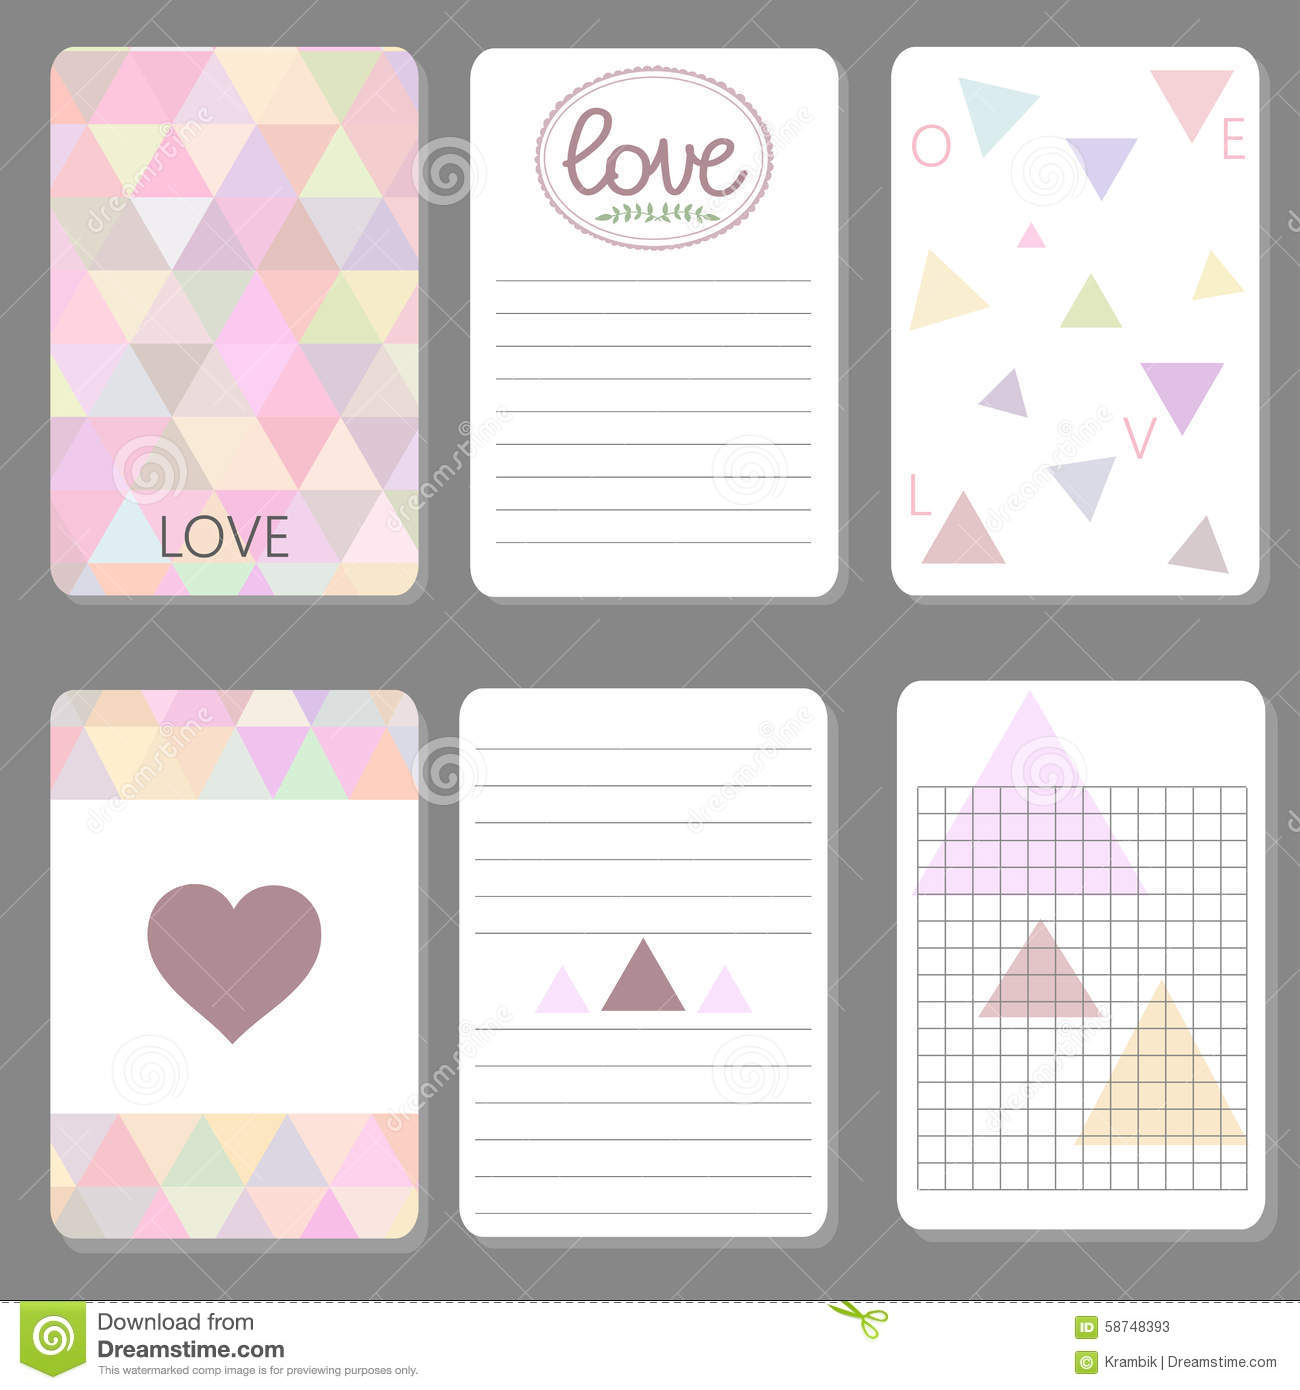 More similar stock images of ` Printable cute design cards triangle `